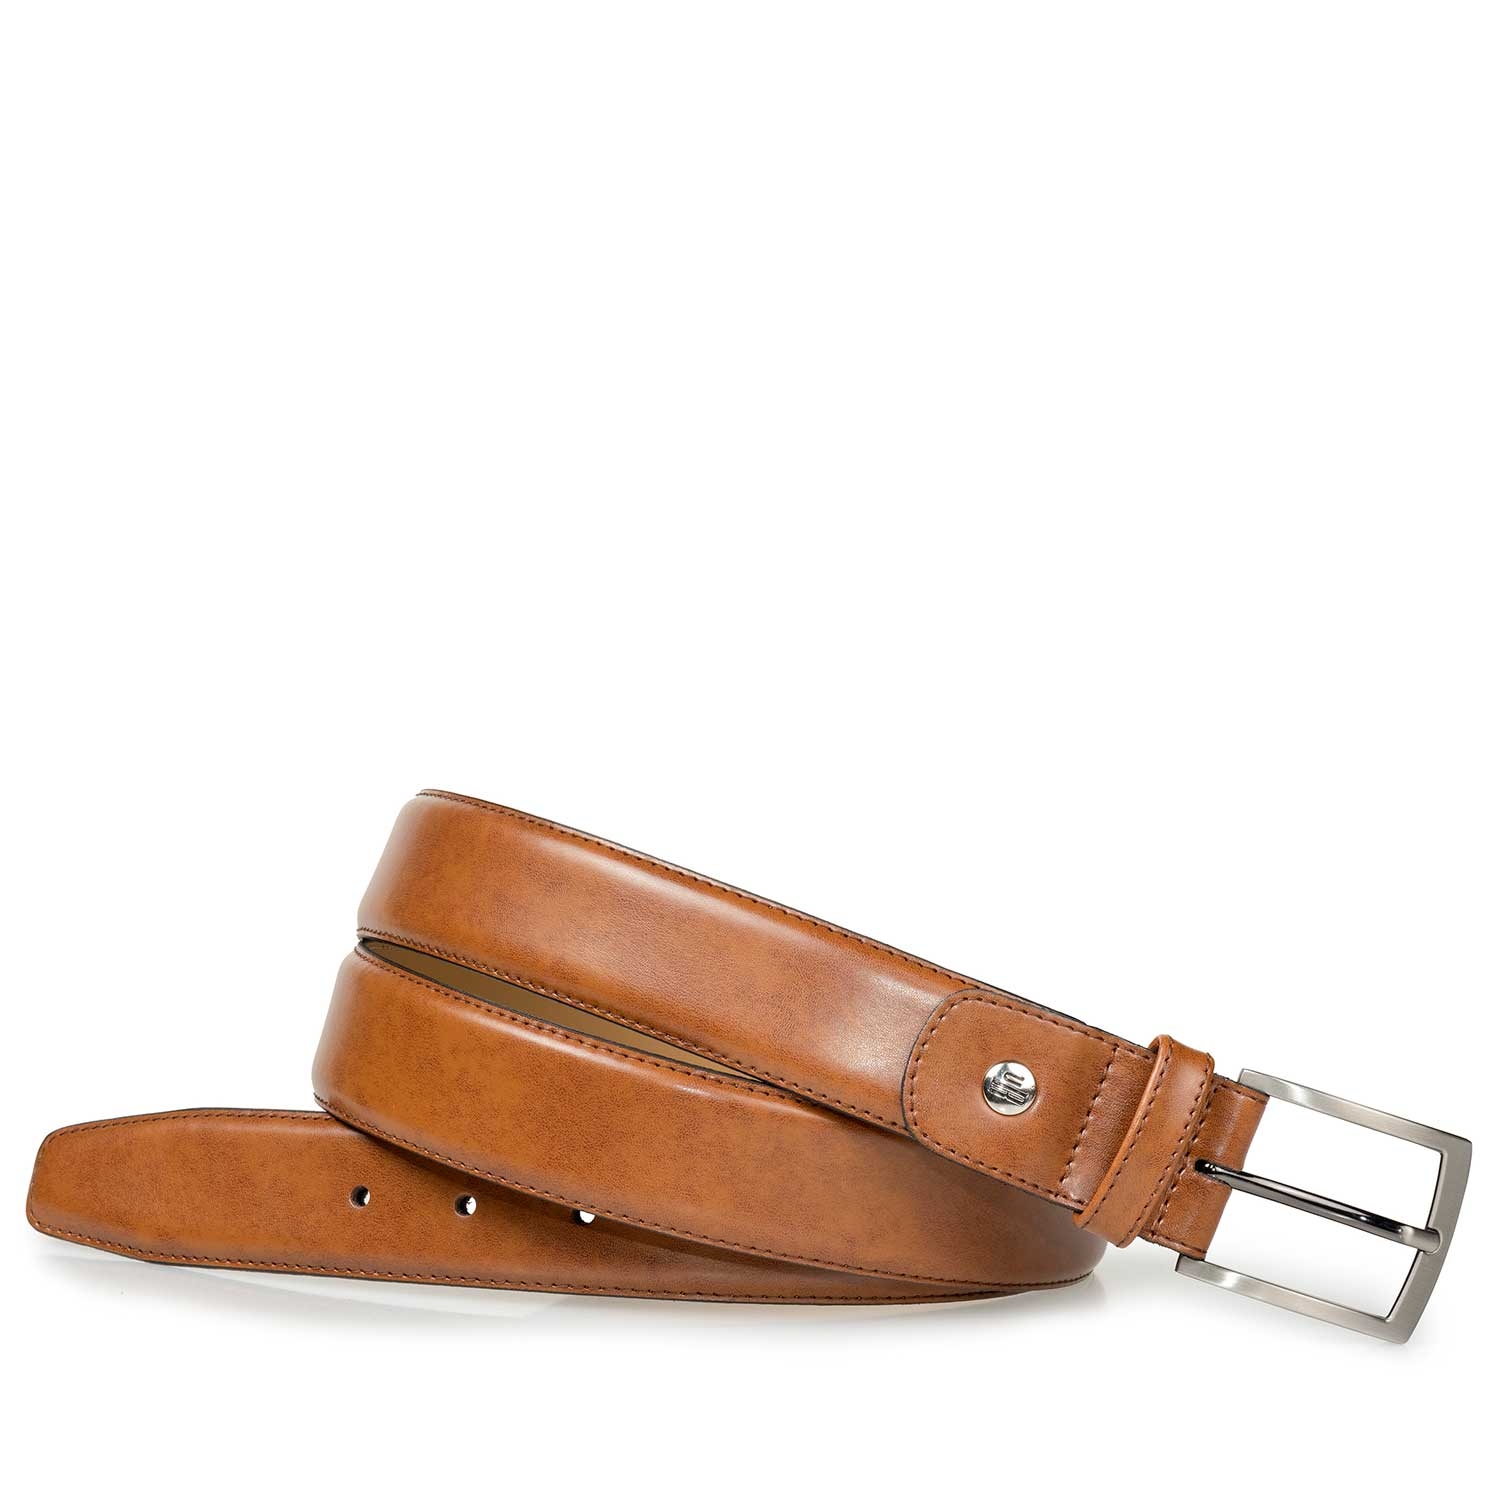 75076/02 - Cognac-coloured calf leather belt